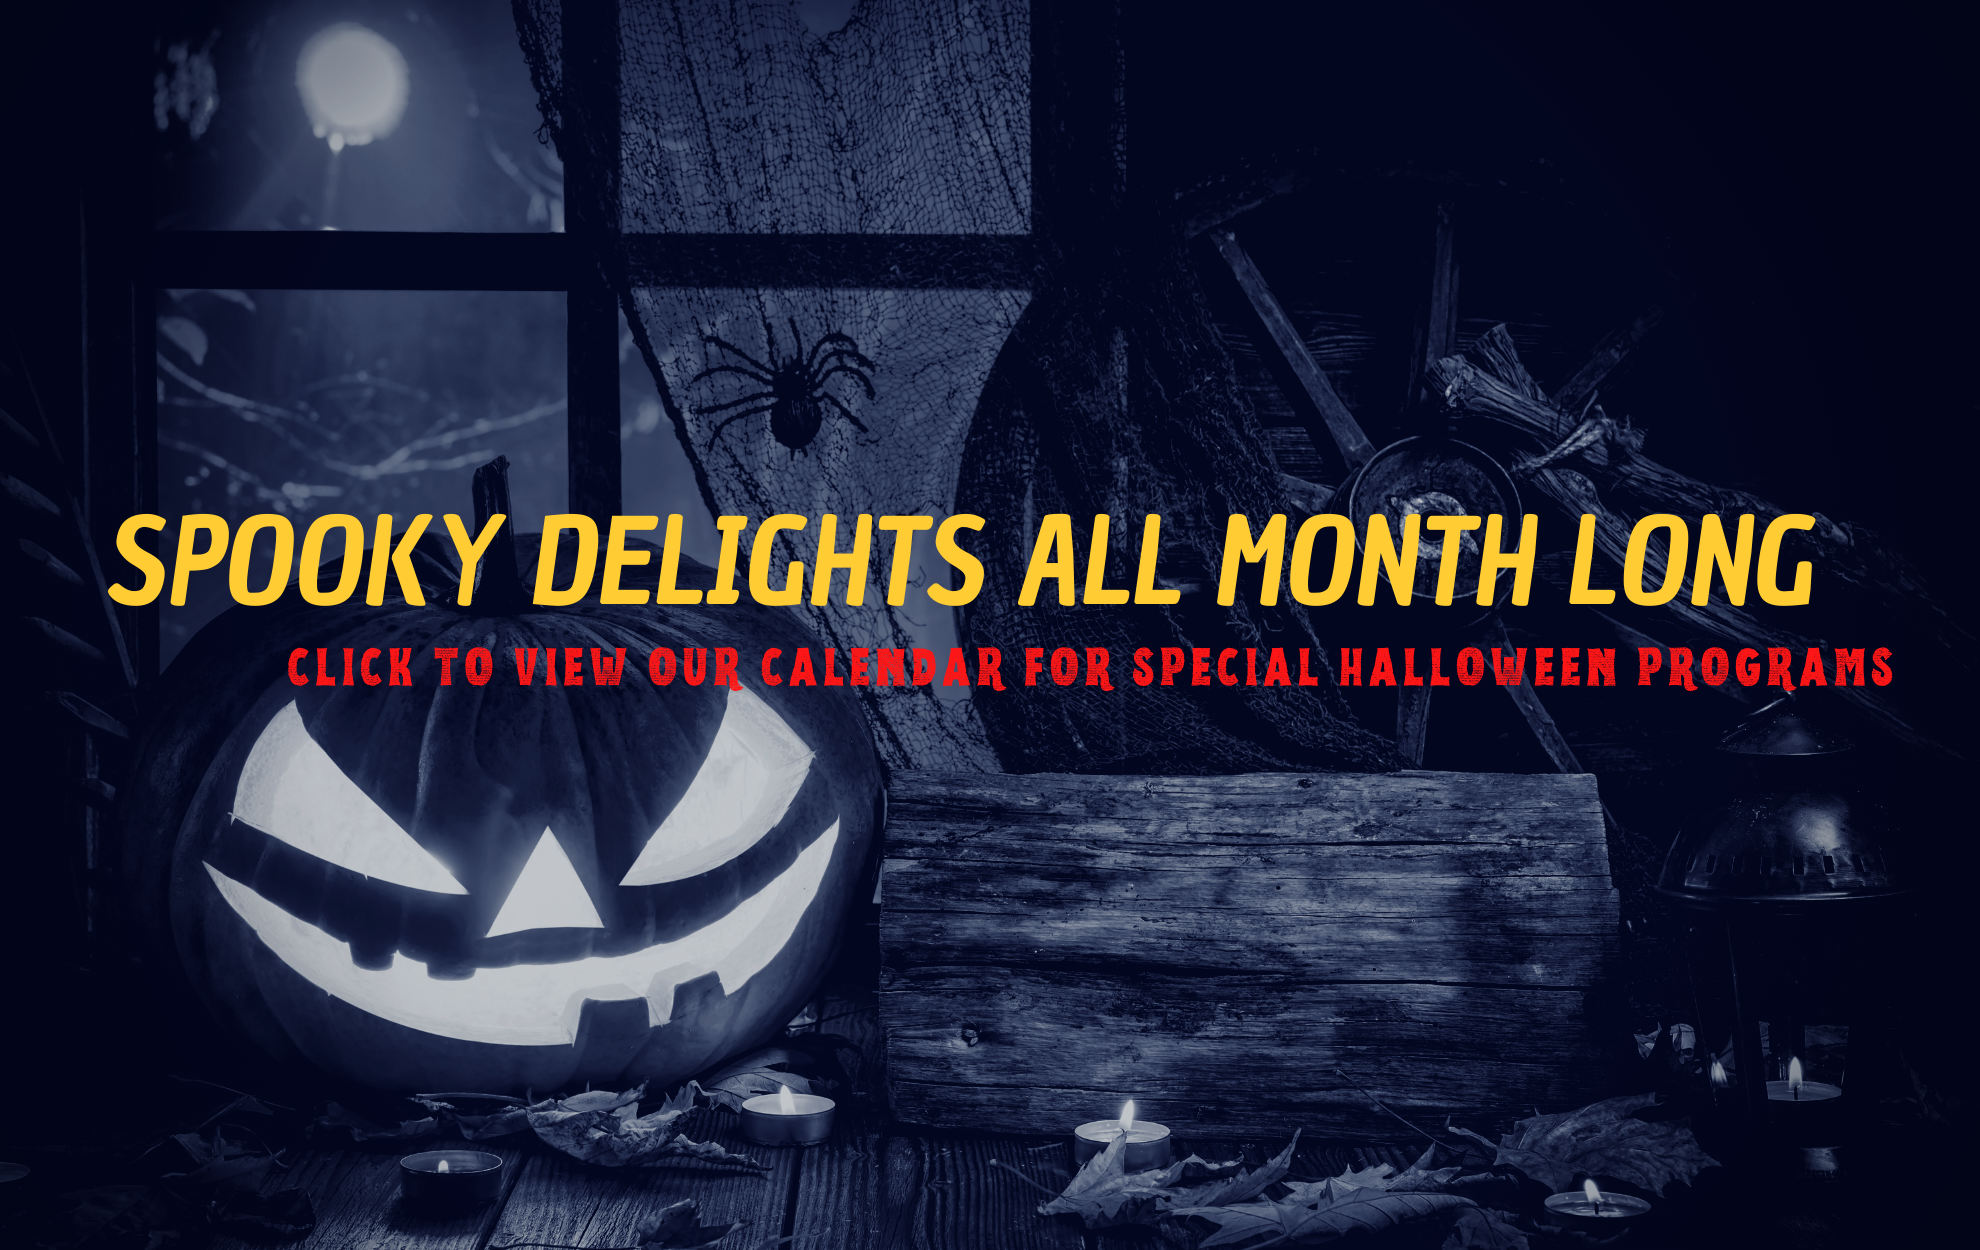 Halloween 2020: Click to view special programs